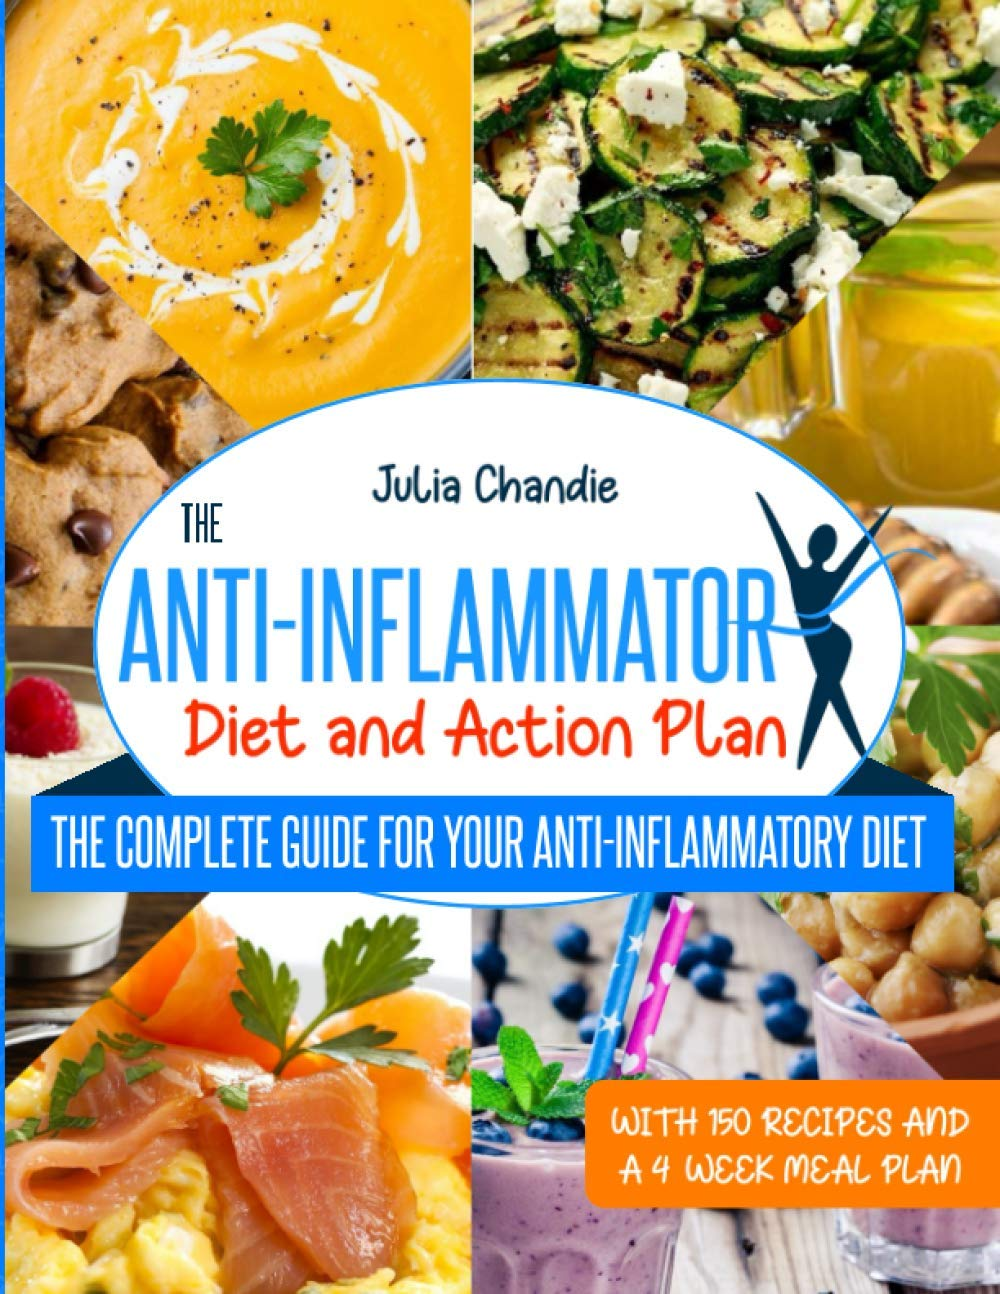 the anti-inflammatory diet and action plans